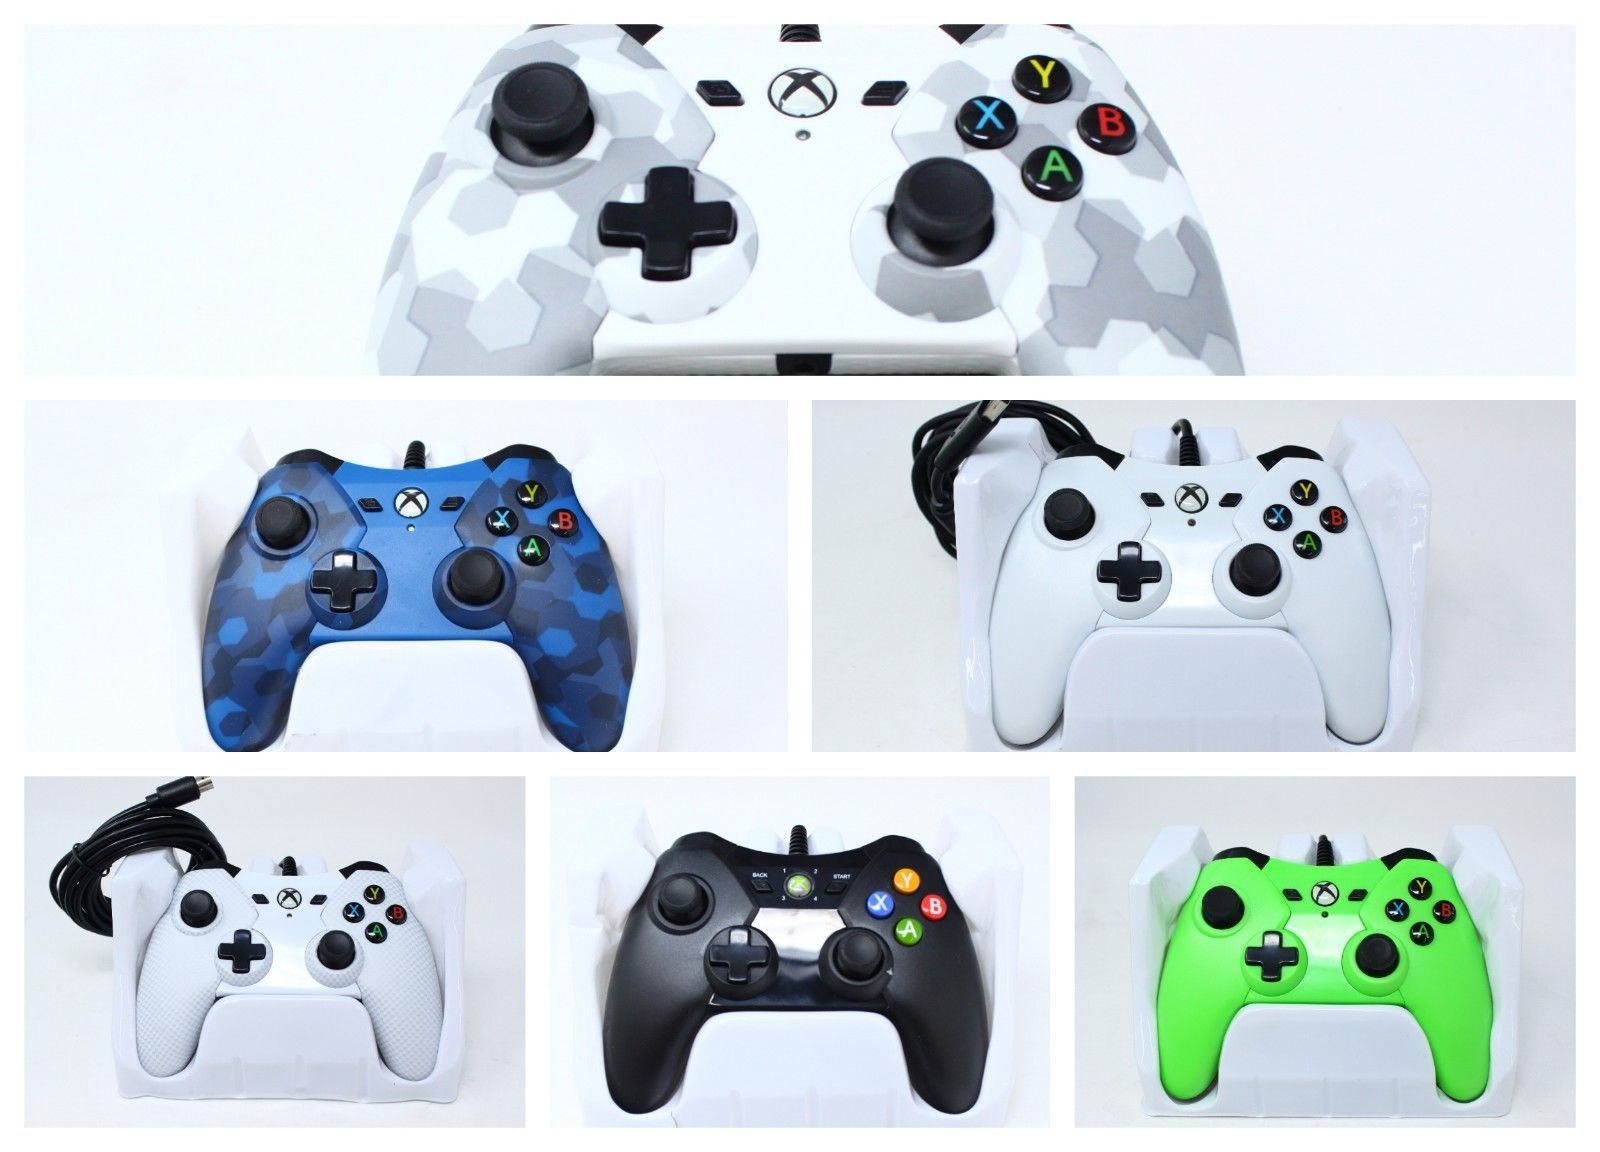 medium resolution of power a wired gaming controller for xbox one and windows 10 multi colors buy it now only 17 99 on ebay video accessories power wired gaming